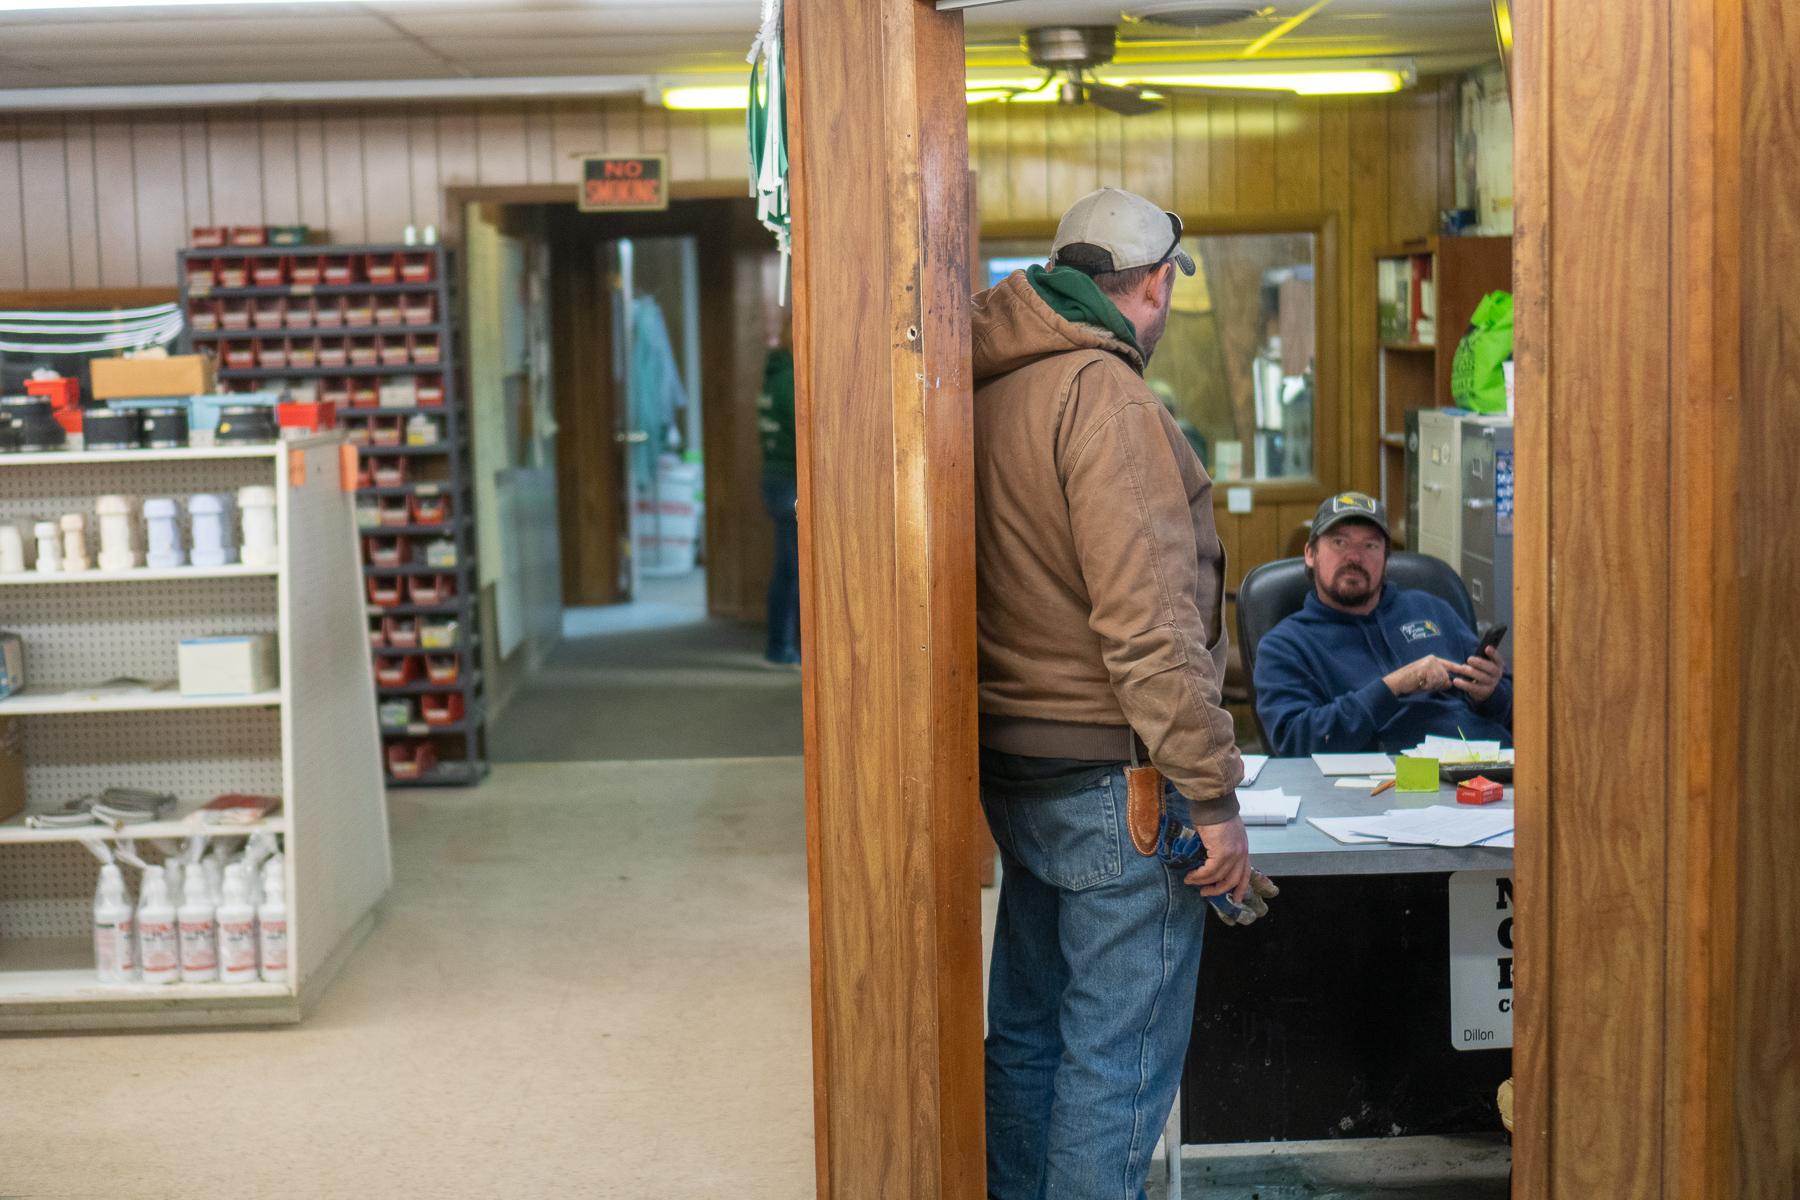 Gene Kickhaefer, branch manager at the Agri Trails Co-op in Navarre, Kansas, talking to Jordan Gott in his office on January 16, 2019. He explained it his hard to find dedicated workers like Casey Schardein that are willing to stay on.